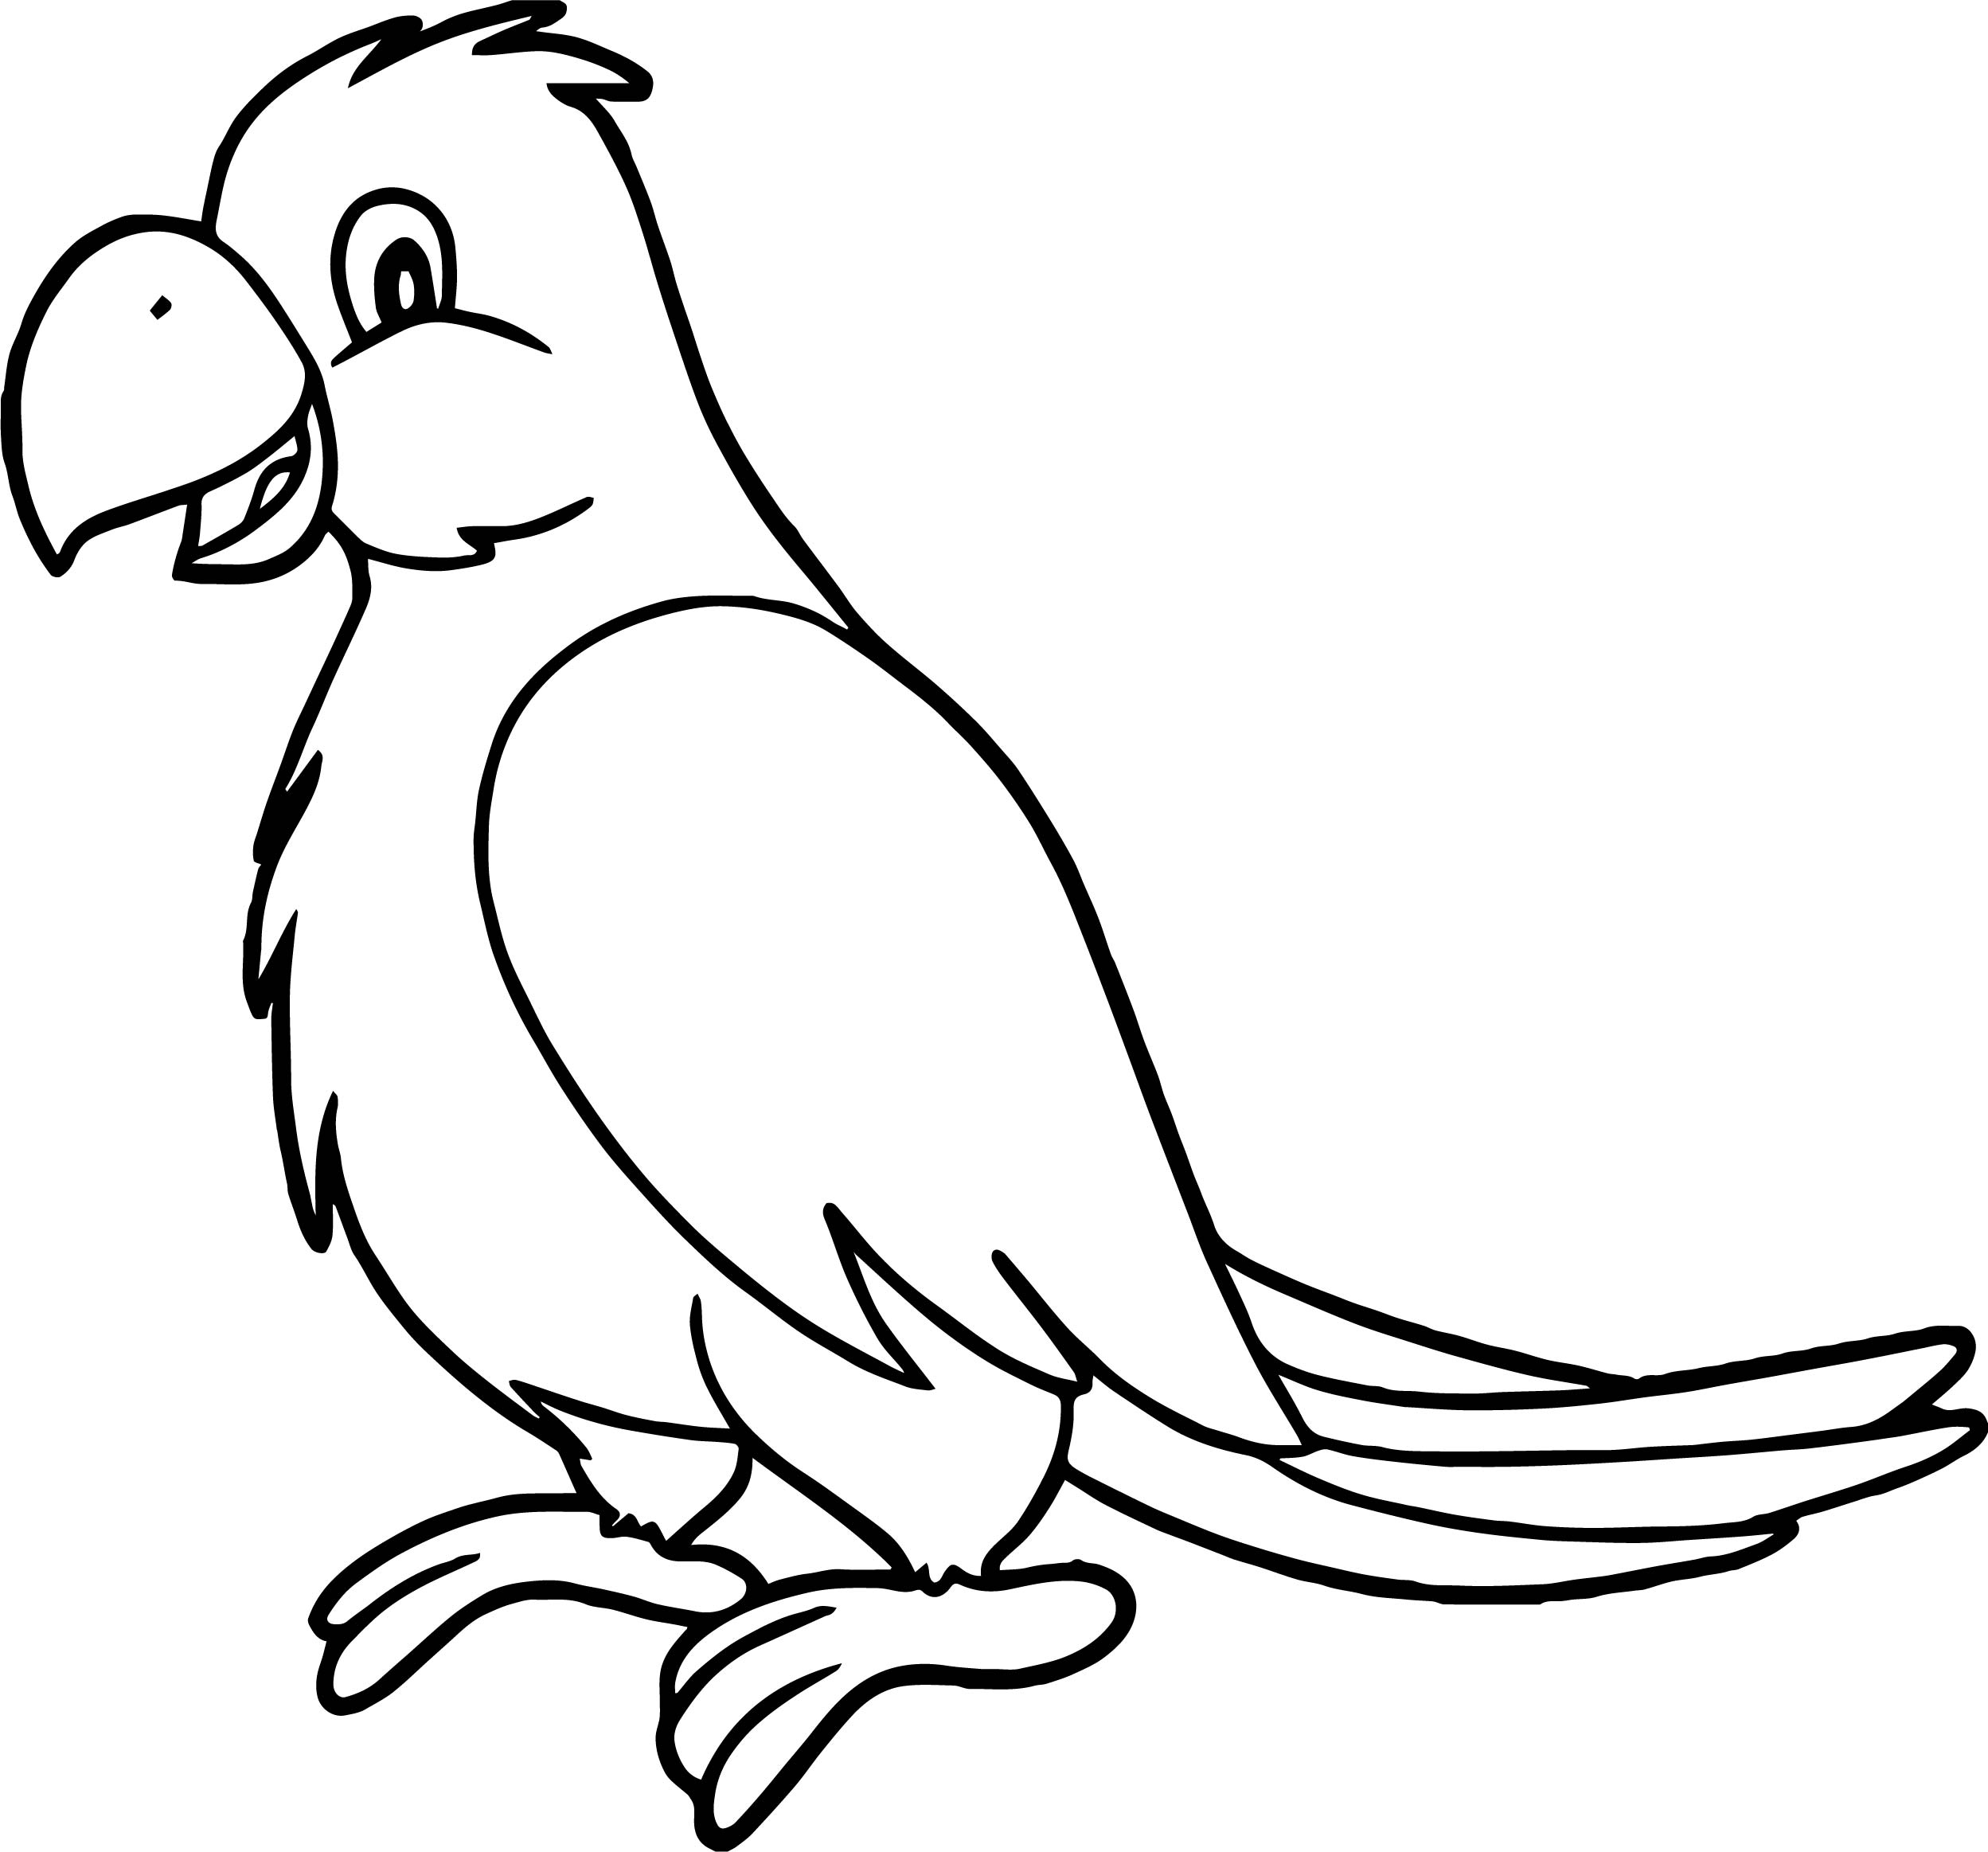 sweet parrot coloring page wecoloringpage - Parrot Pictures To Color